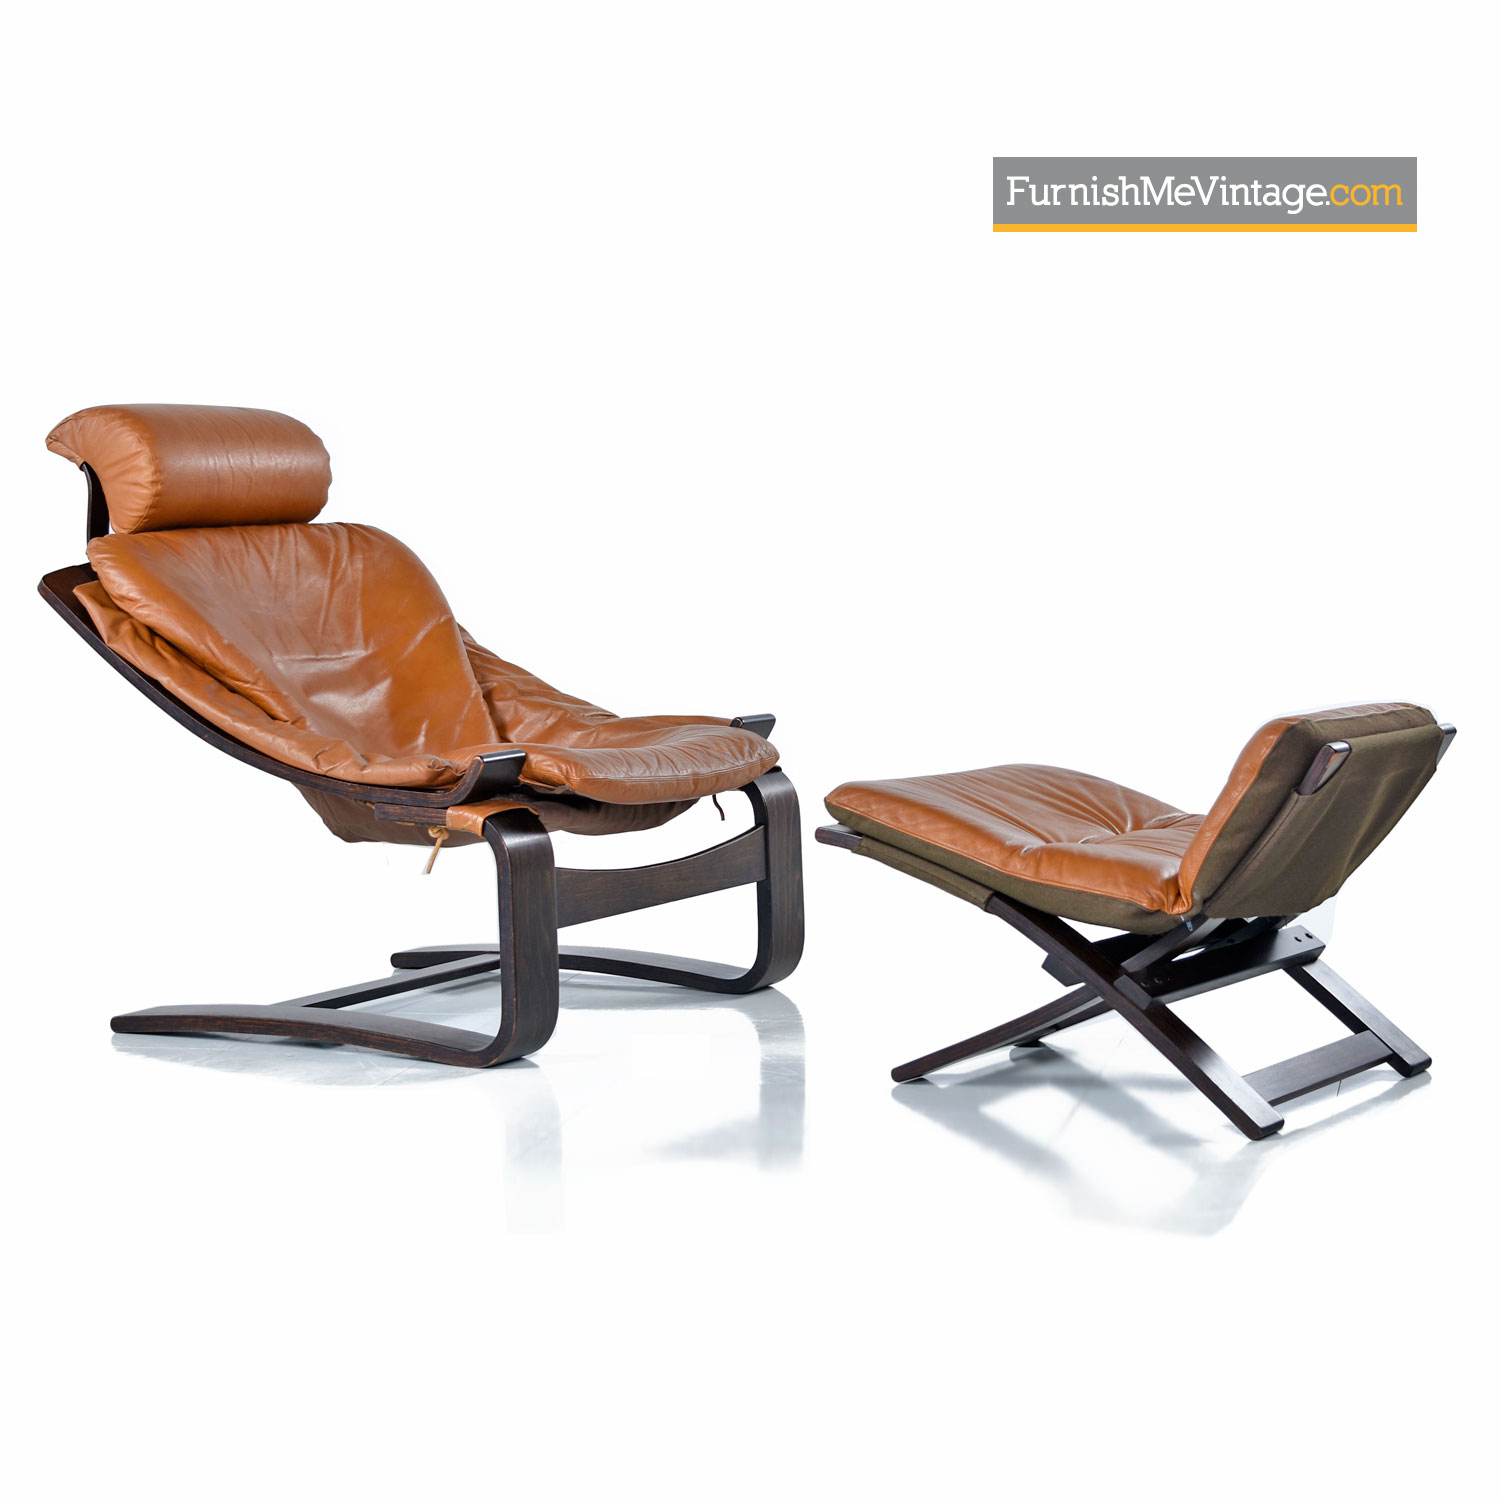 Swell Ake Fribytter For Nelo Rosewood Kroken Lounge Chair Ottoman Creativecarmelina Interior Chair Design Creativecarmelinacom